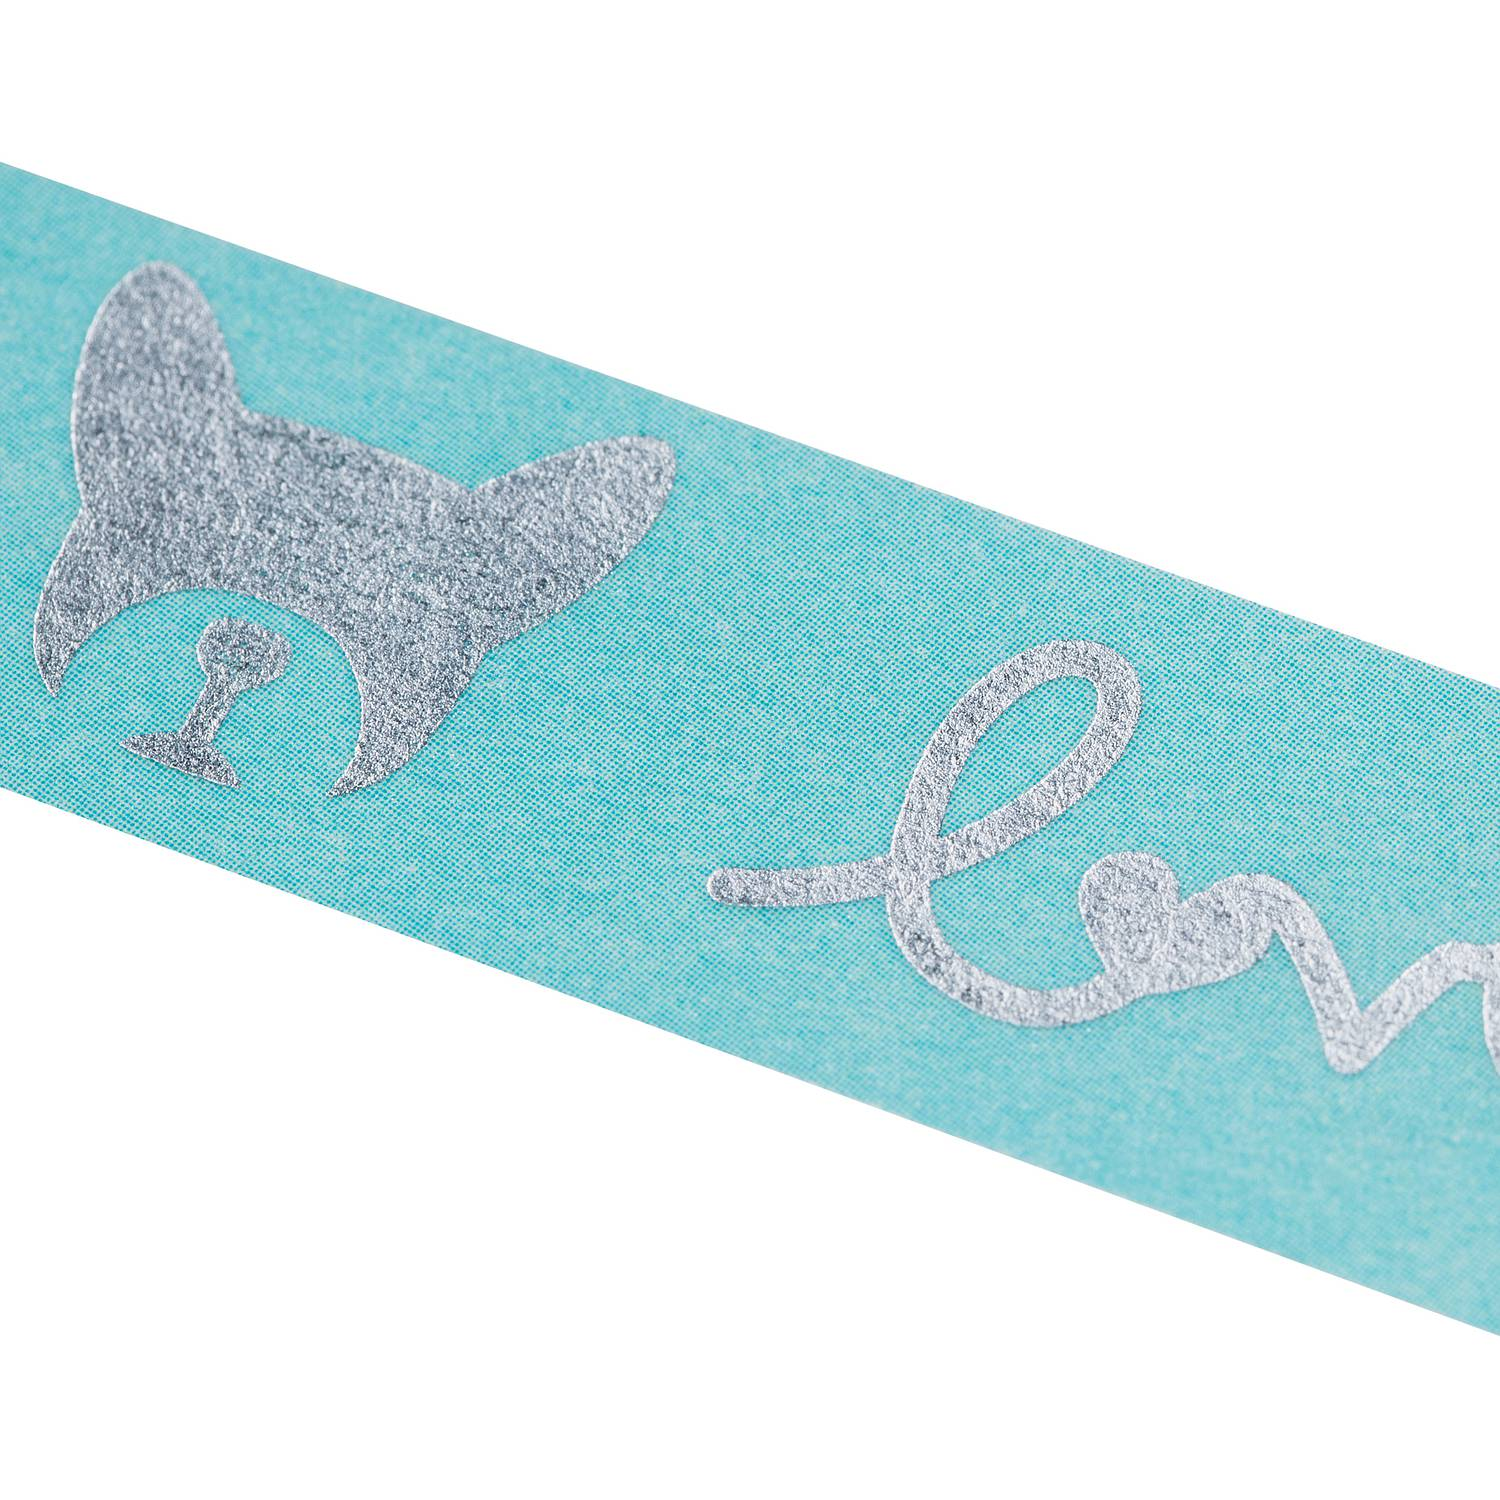 Washi Tape - Bulldogge blau